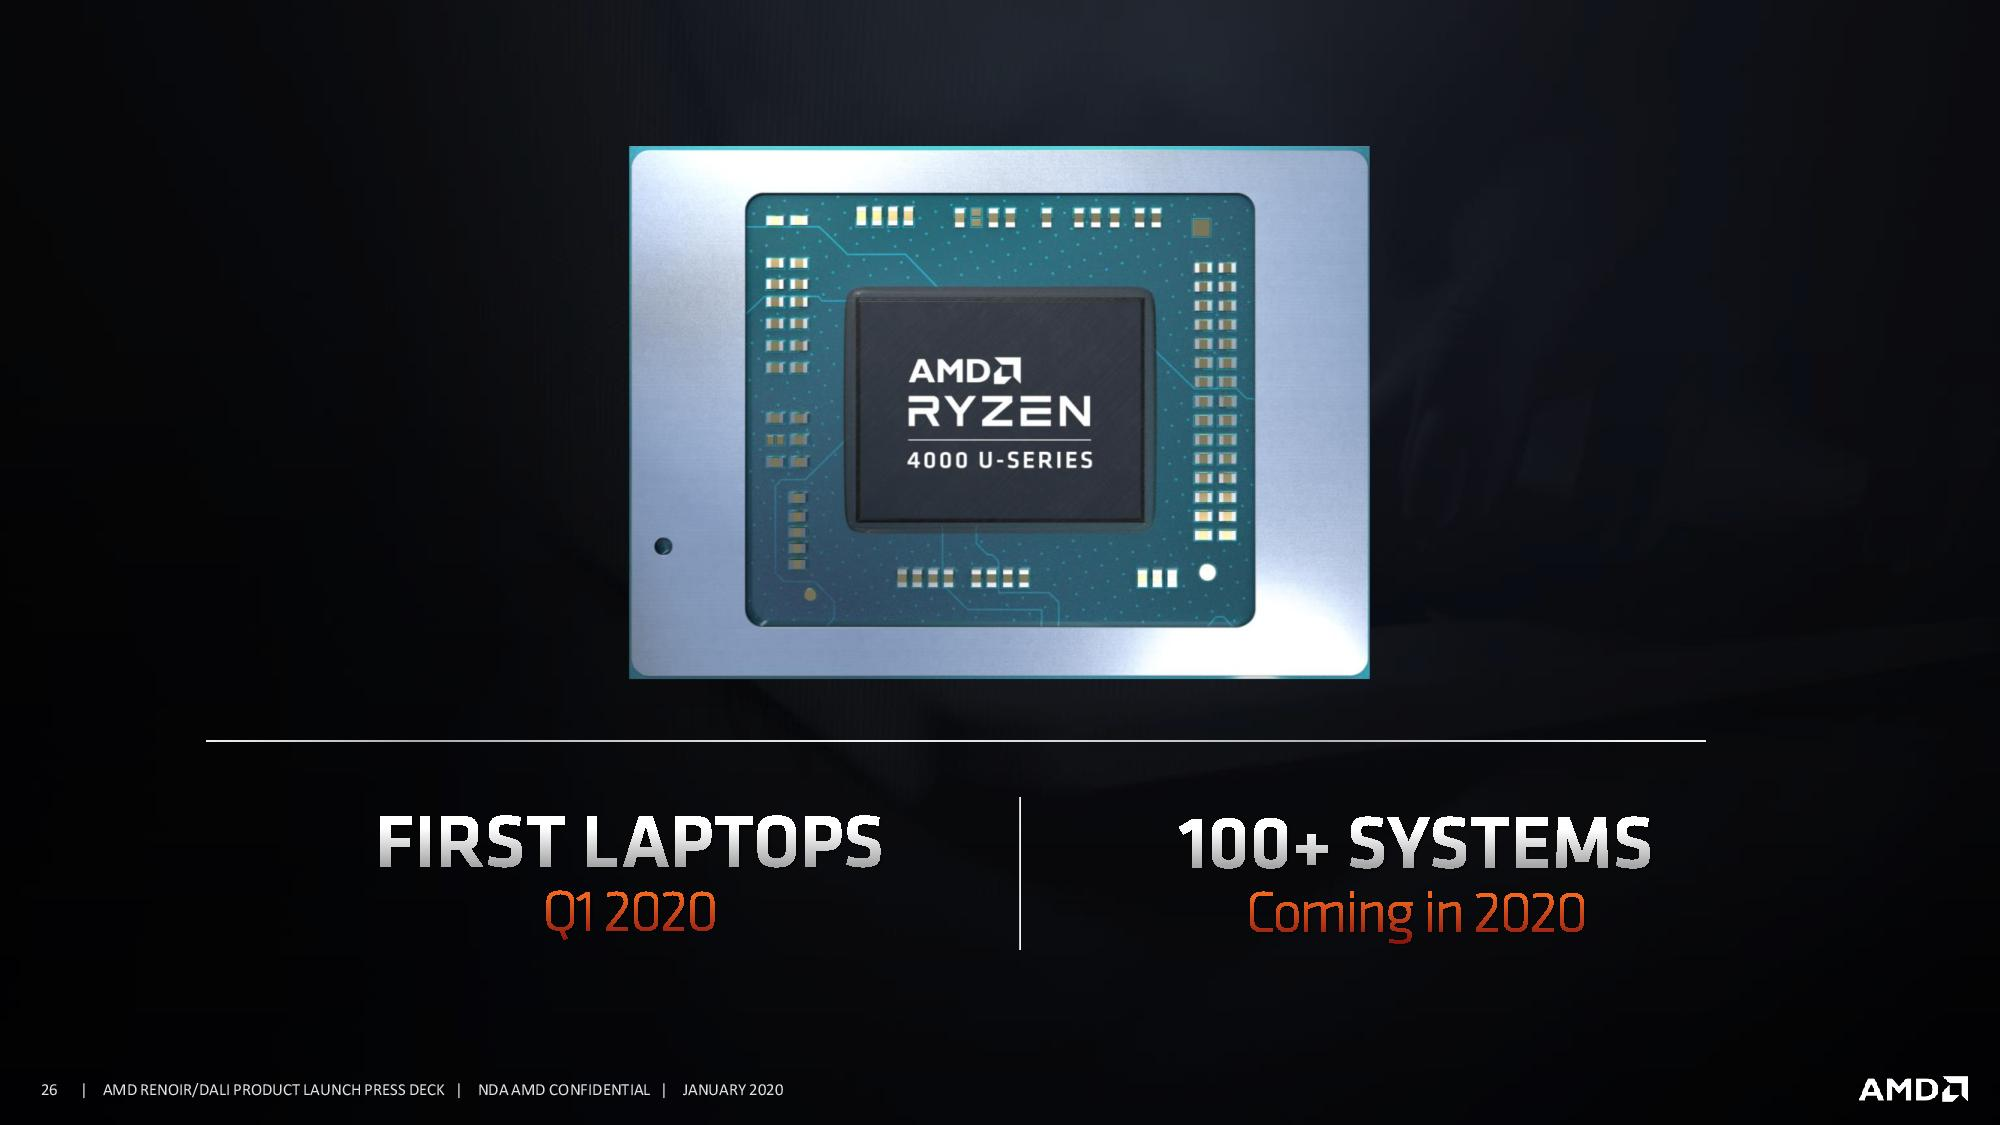 AMD%20CES%202020%20Update_Client_Embargoed%20Until%20Jan.%206%20at%206pm%20ET-page-026.jpg